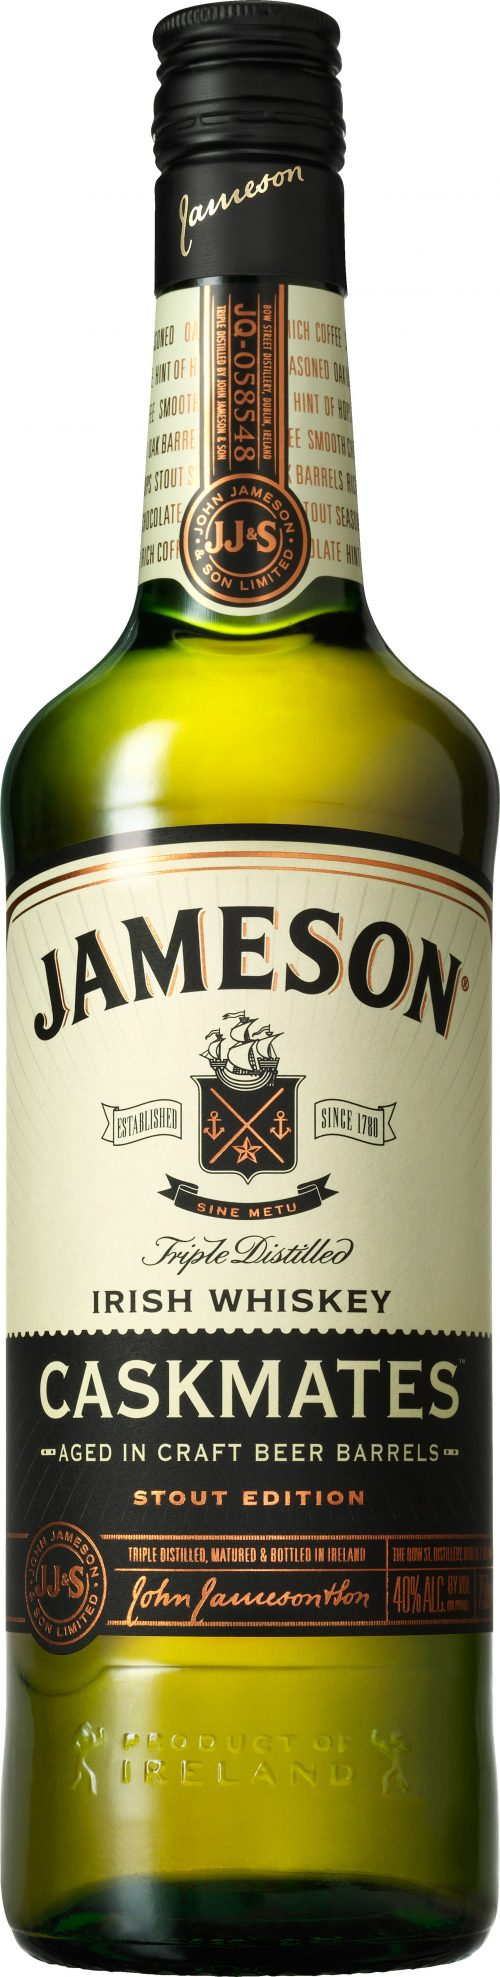 JAMESON CASKMATES STOUT EDITION 750ml-4964